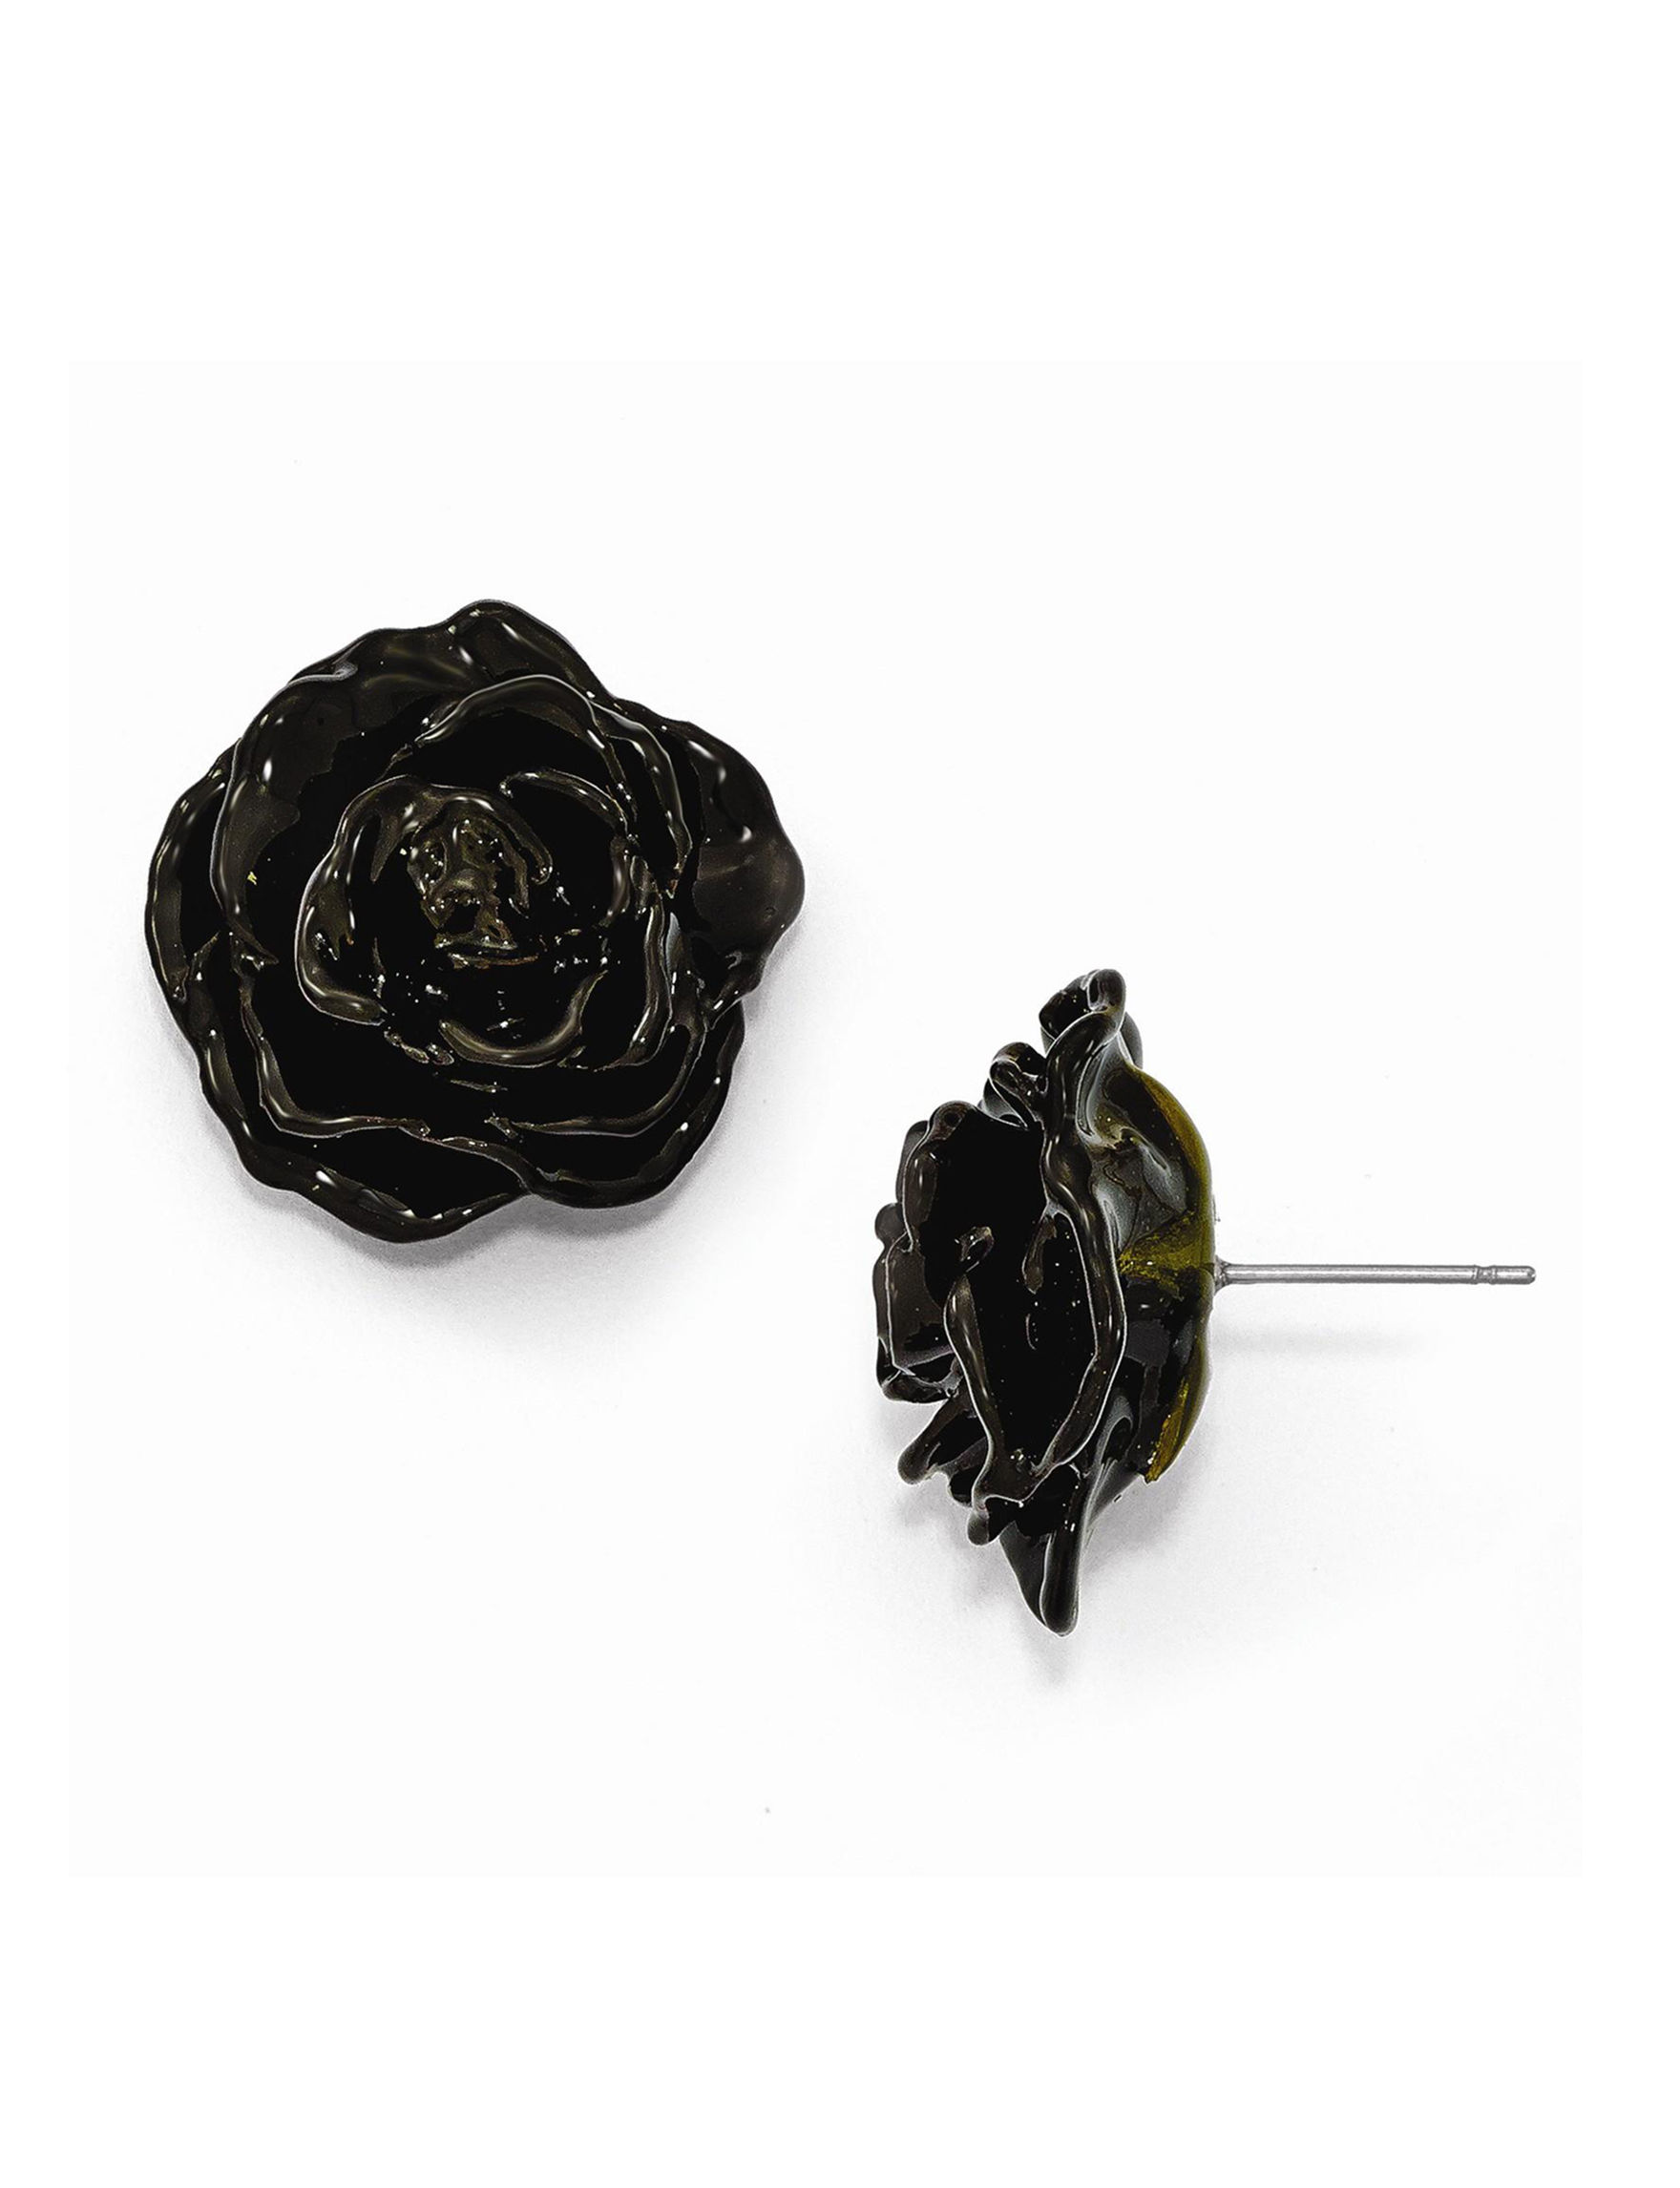 Affordable Expressions Black Studs Earrings Fine Jewelry